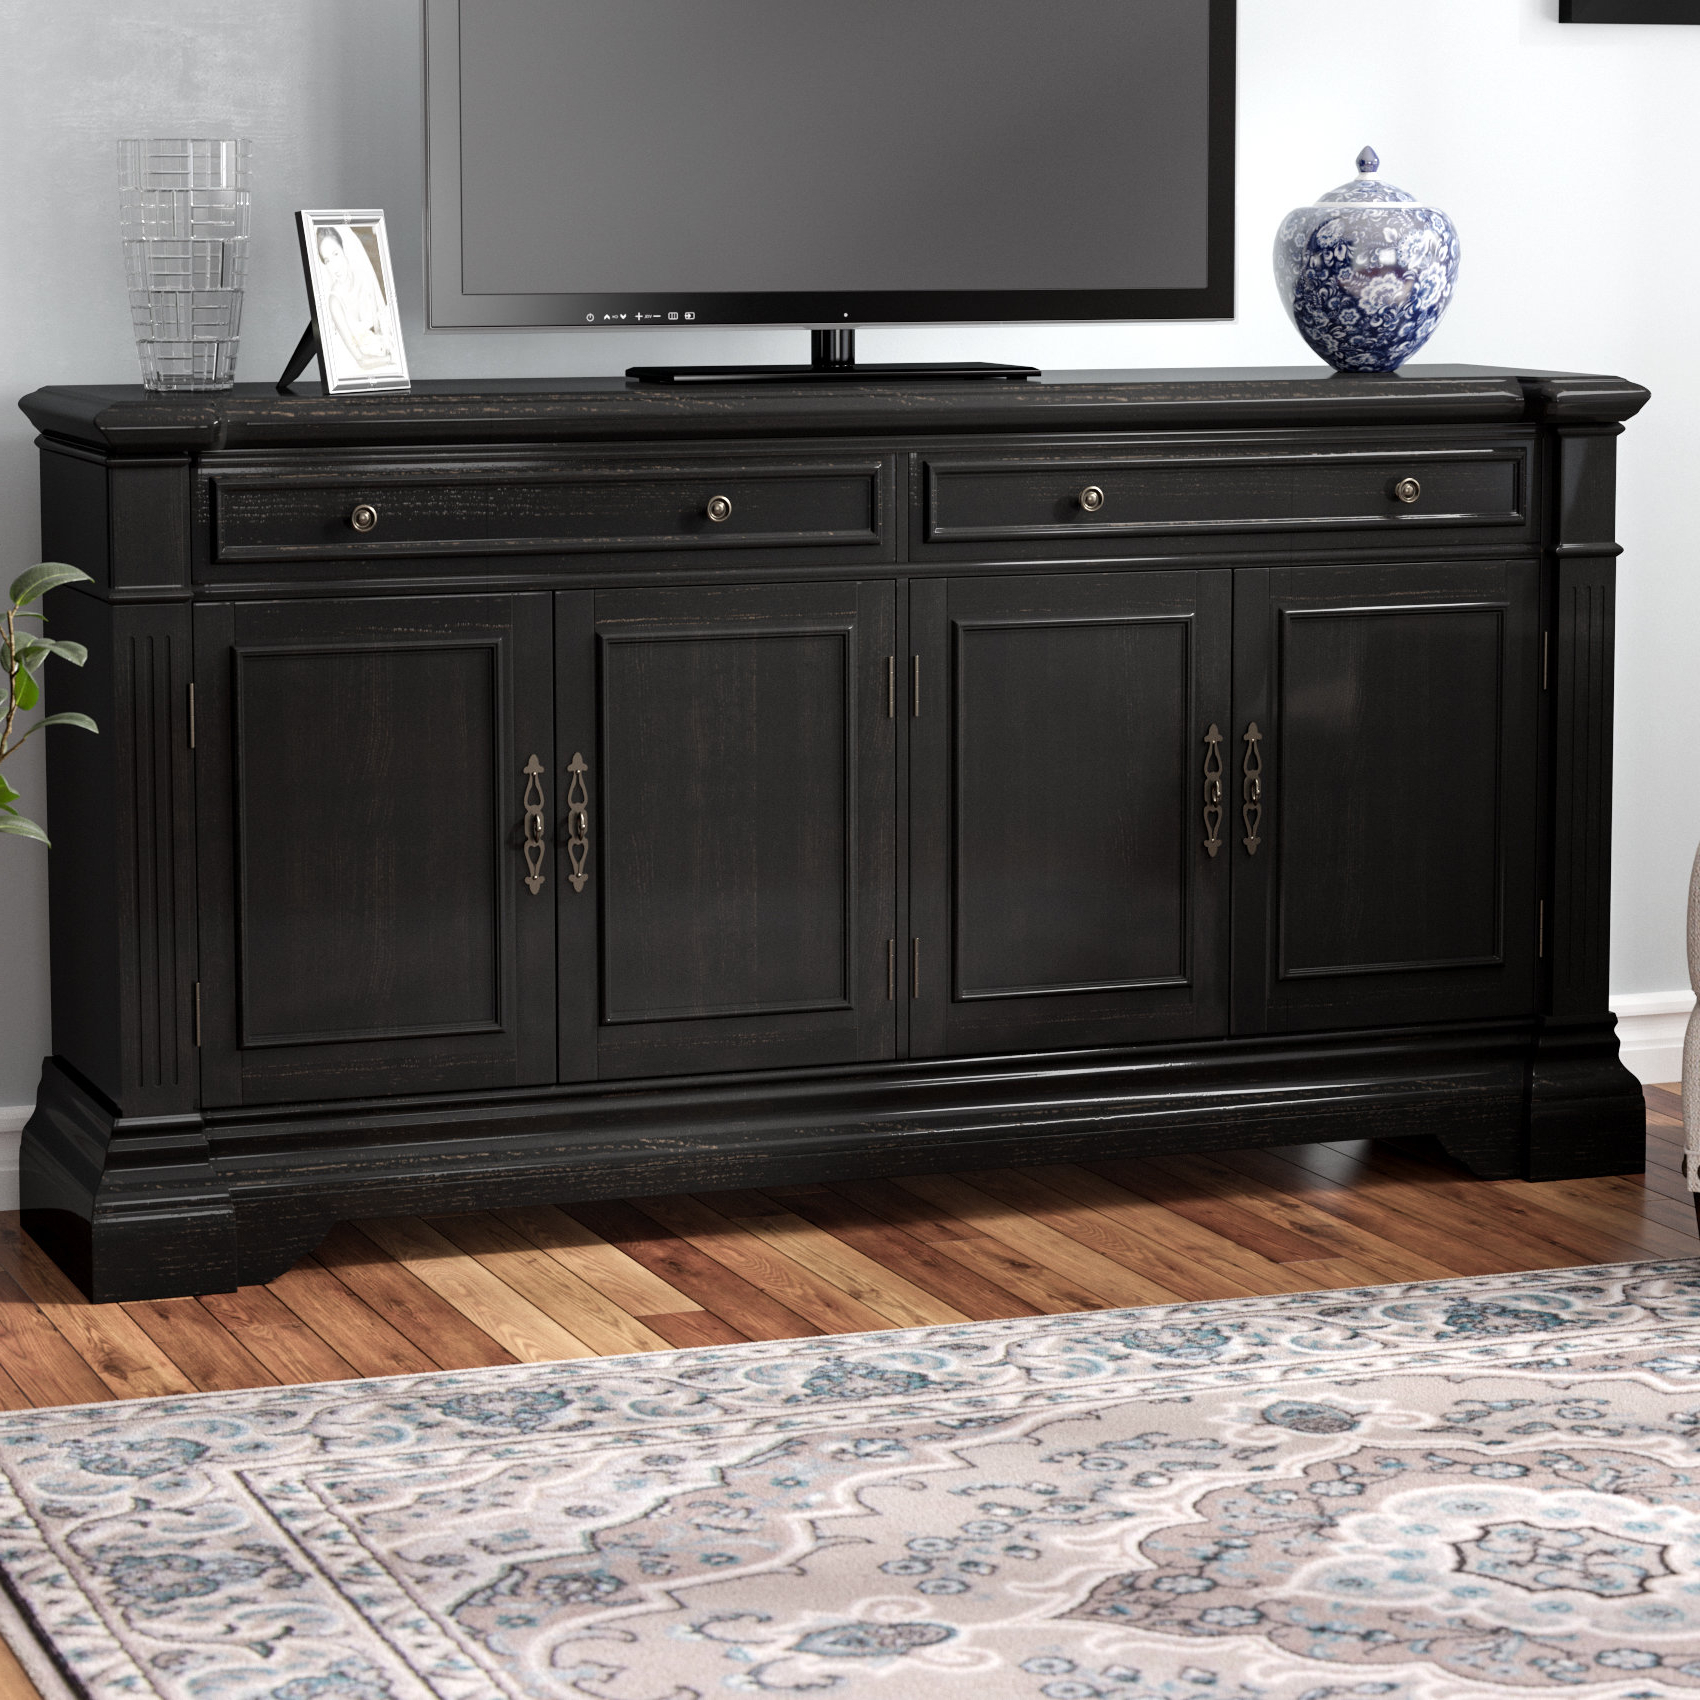 Tall Tv Stands You'll Love | Wayfair Intended For Canyon 54 Inch Tv Stands (View 18 of 20)